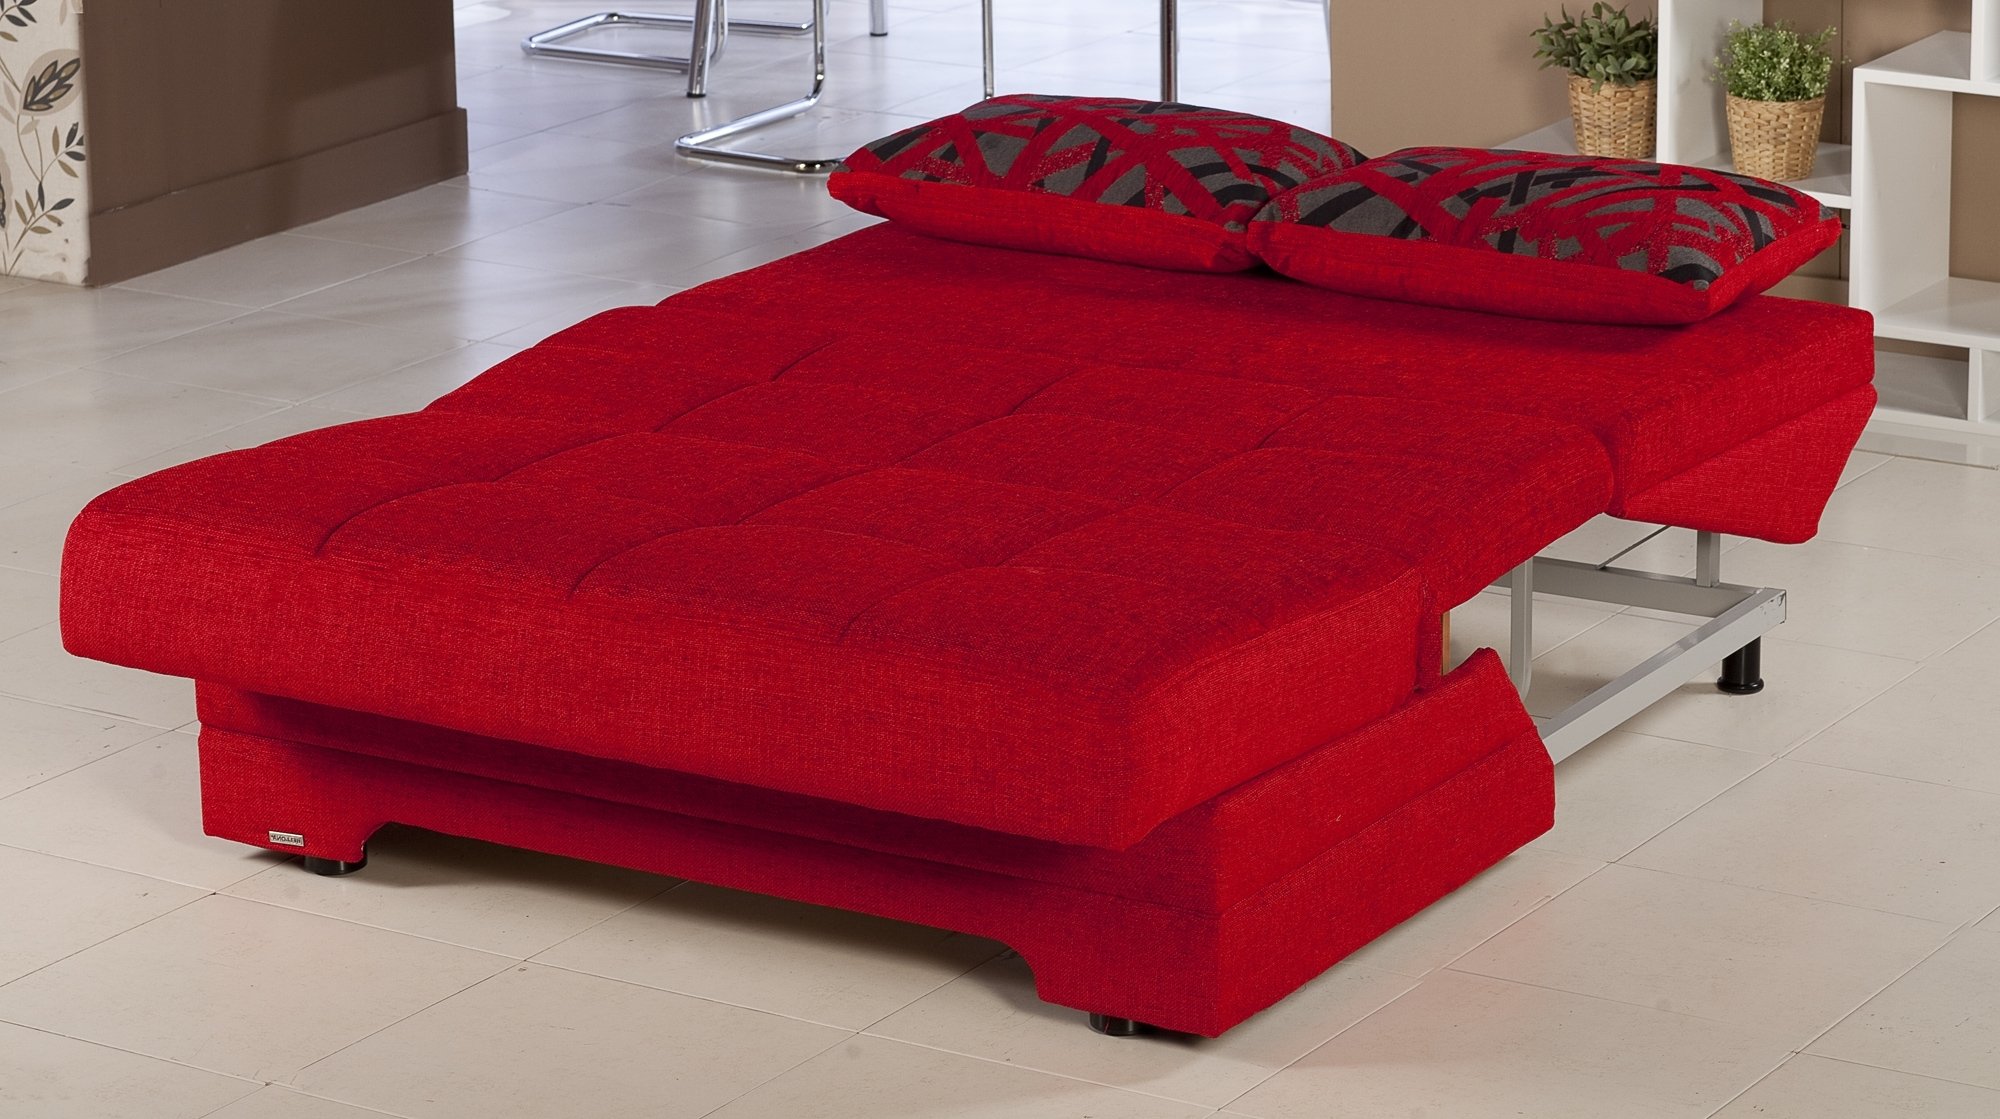 Trendy Red Sleeper Sofas For Popular Of Red Leather Sleeper Sofa Coolest Living Room Remodel (View 13 of 15)